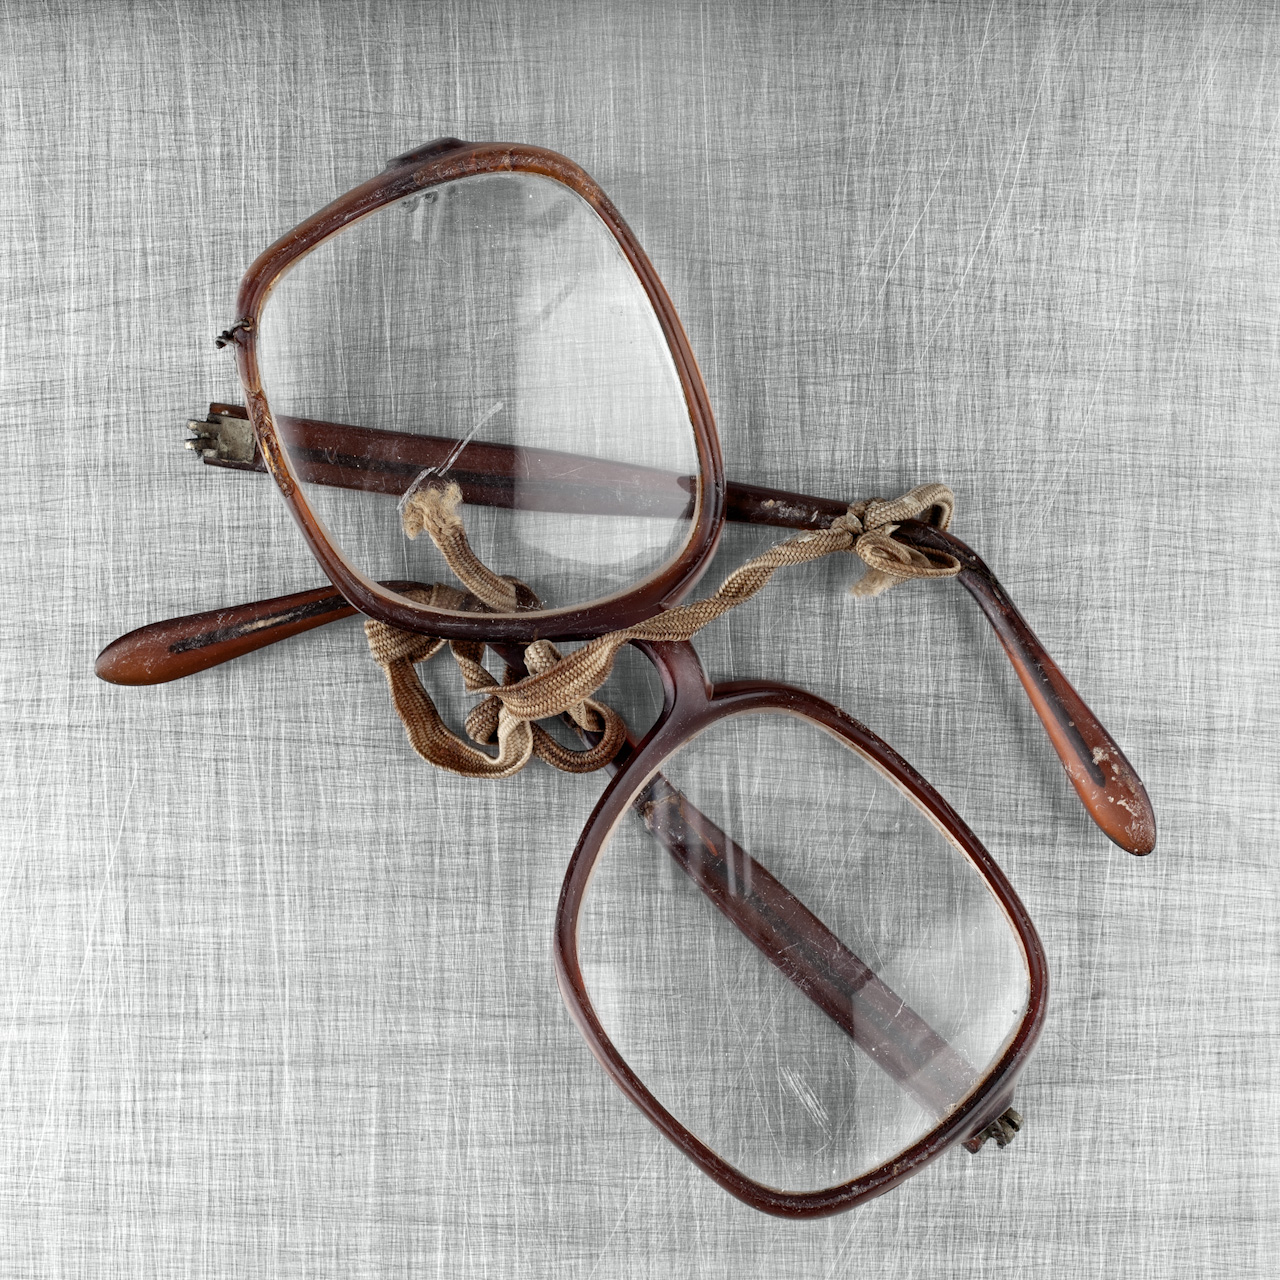 Glasses, from Quest for Identity. Photo: Ziyah Gafić